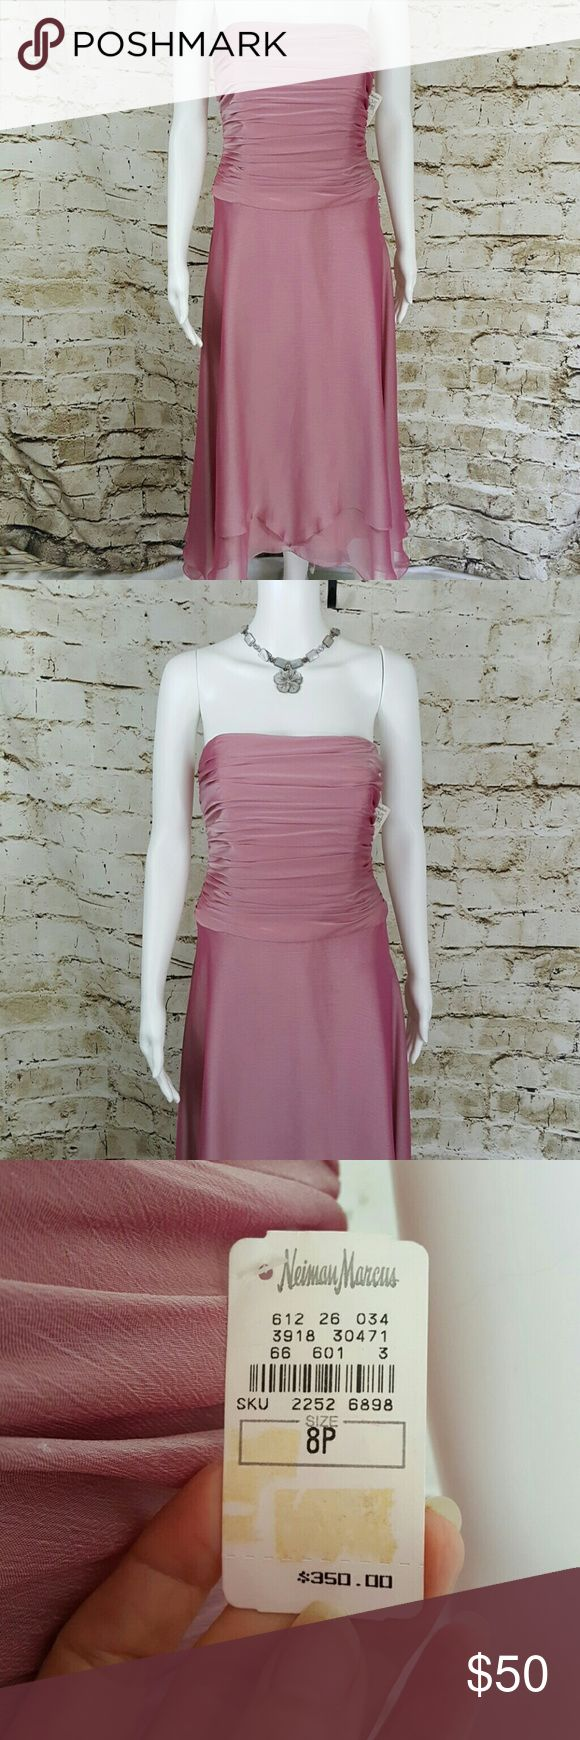 NWT $350 Kay Unger Chiffon dress Gorgeous fully lined double tiered dress this dress is so graceful, beautiful rose color. Kay Unger Dresses Midi